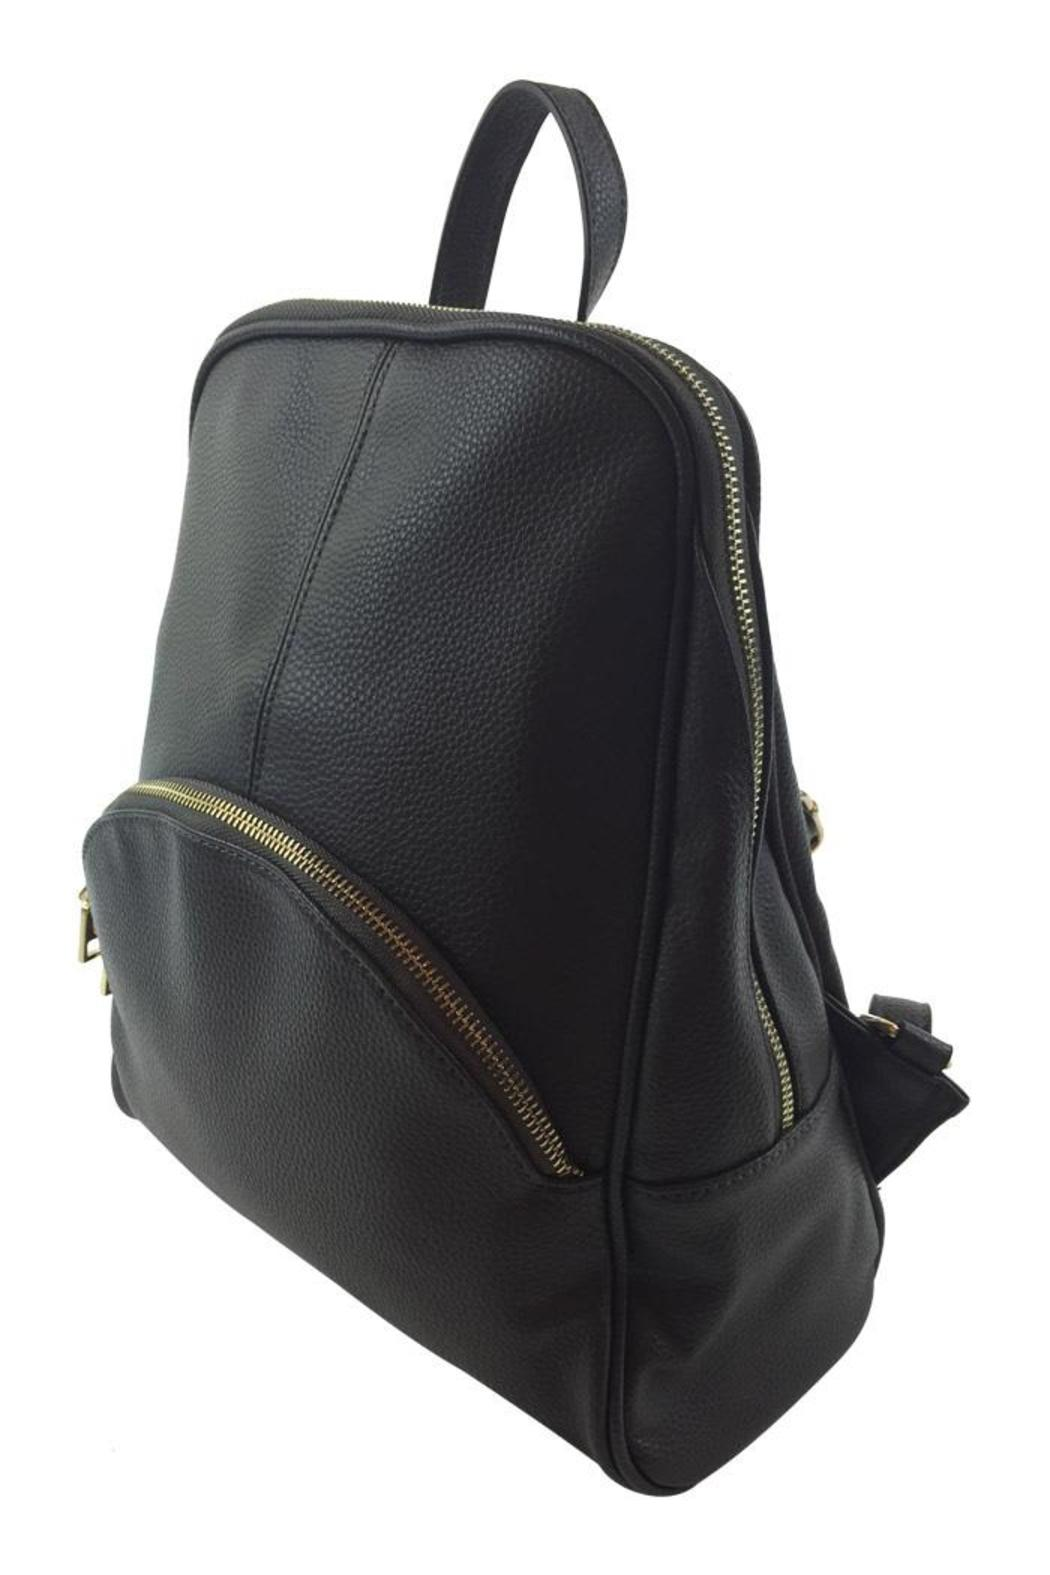 FaFa-Montreal Christine-Vegan Leather Backpack from Montreal by ...